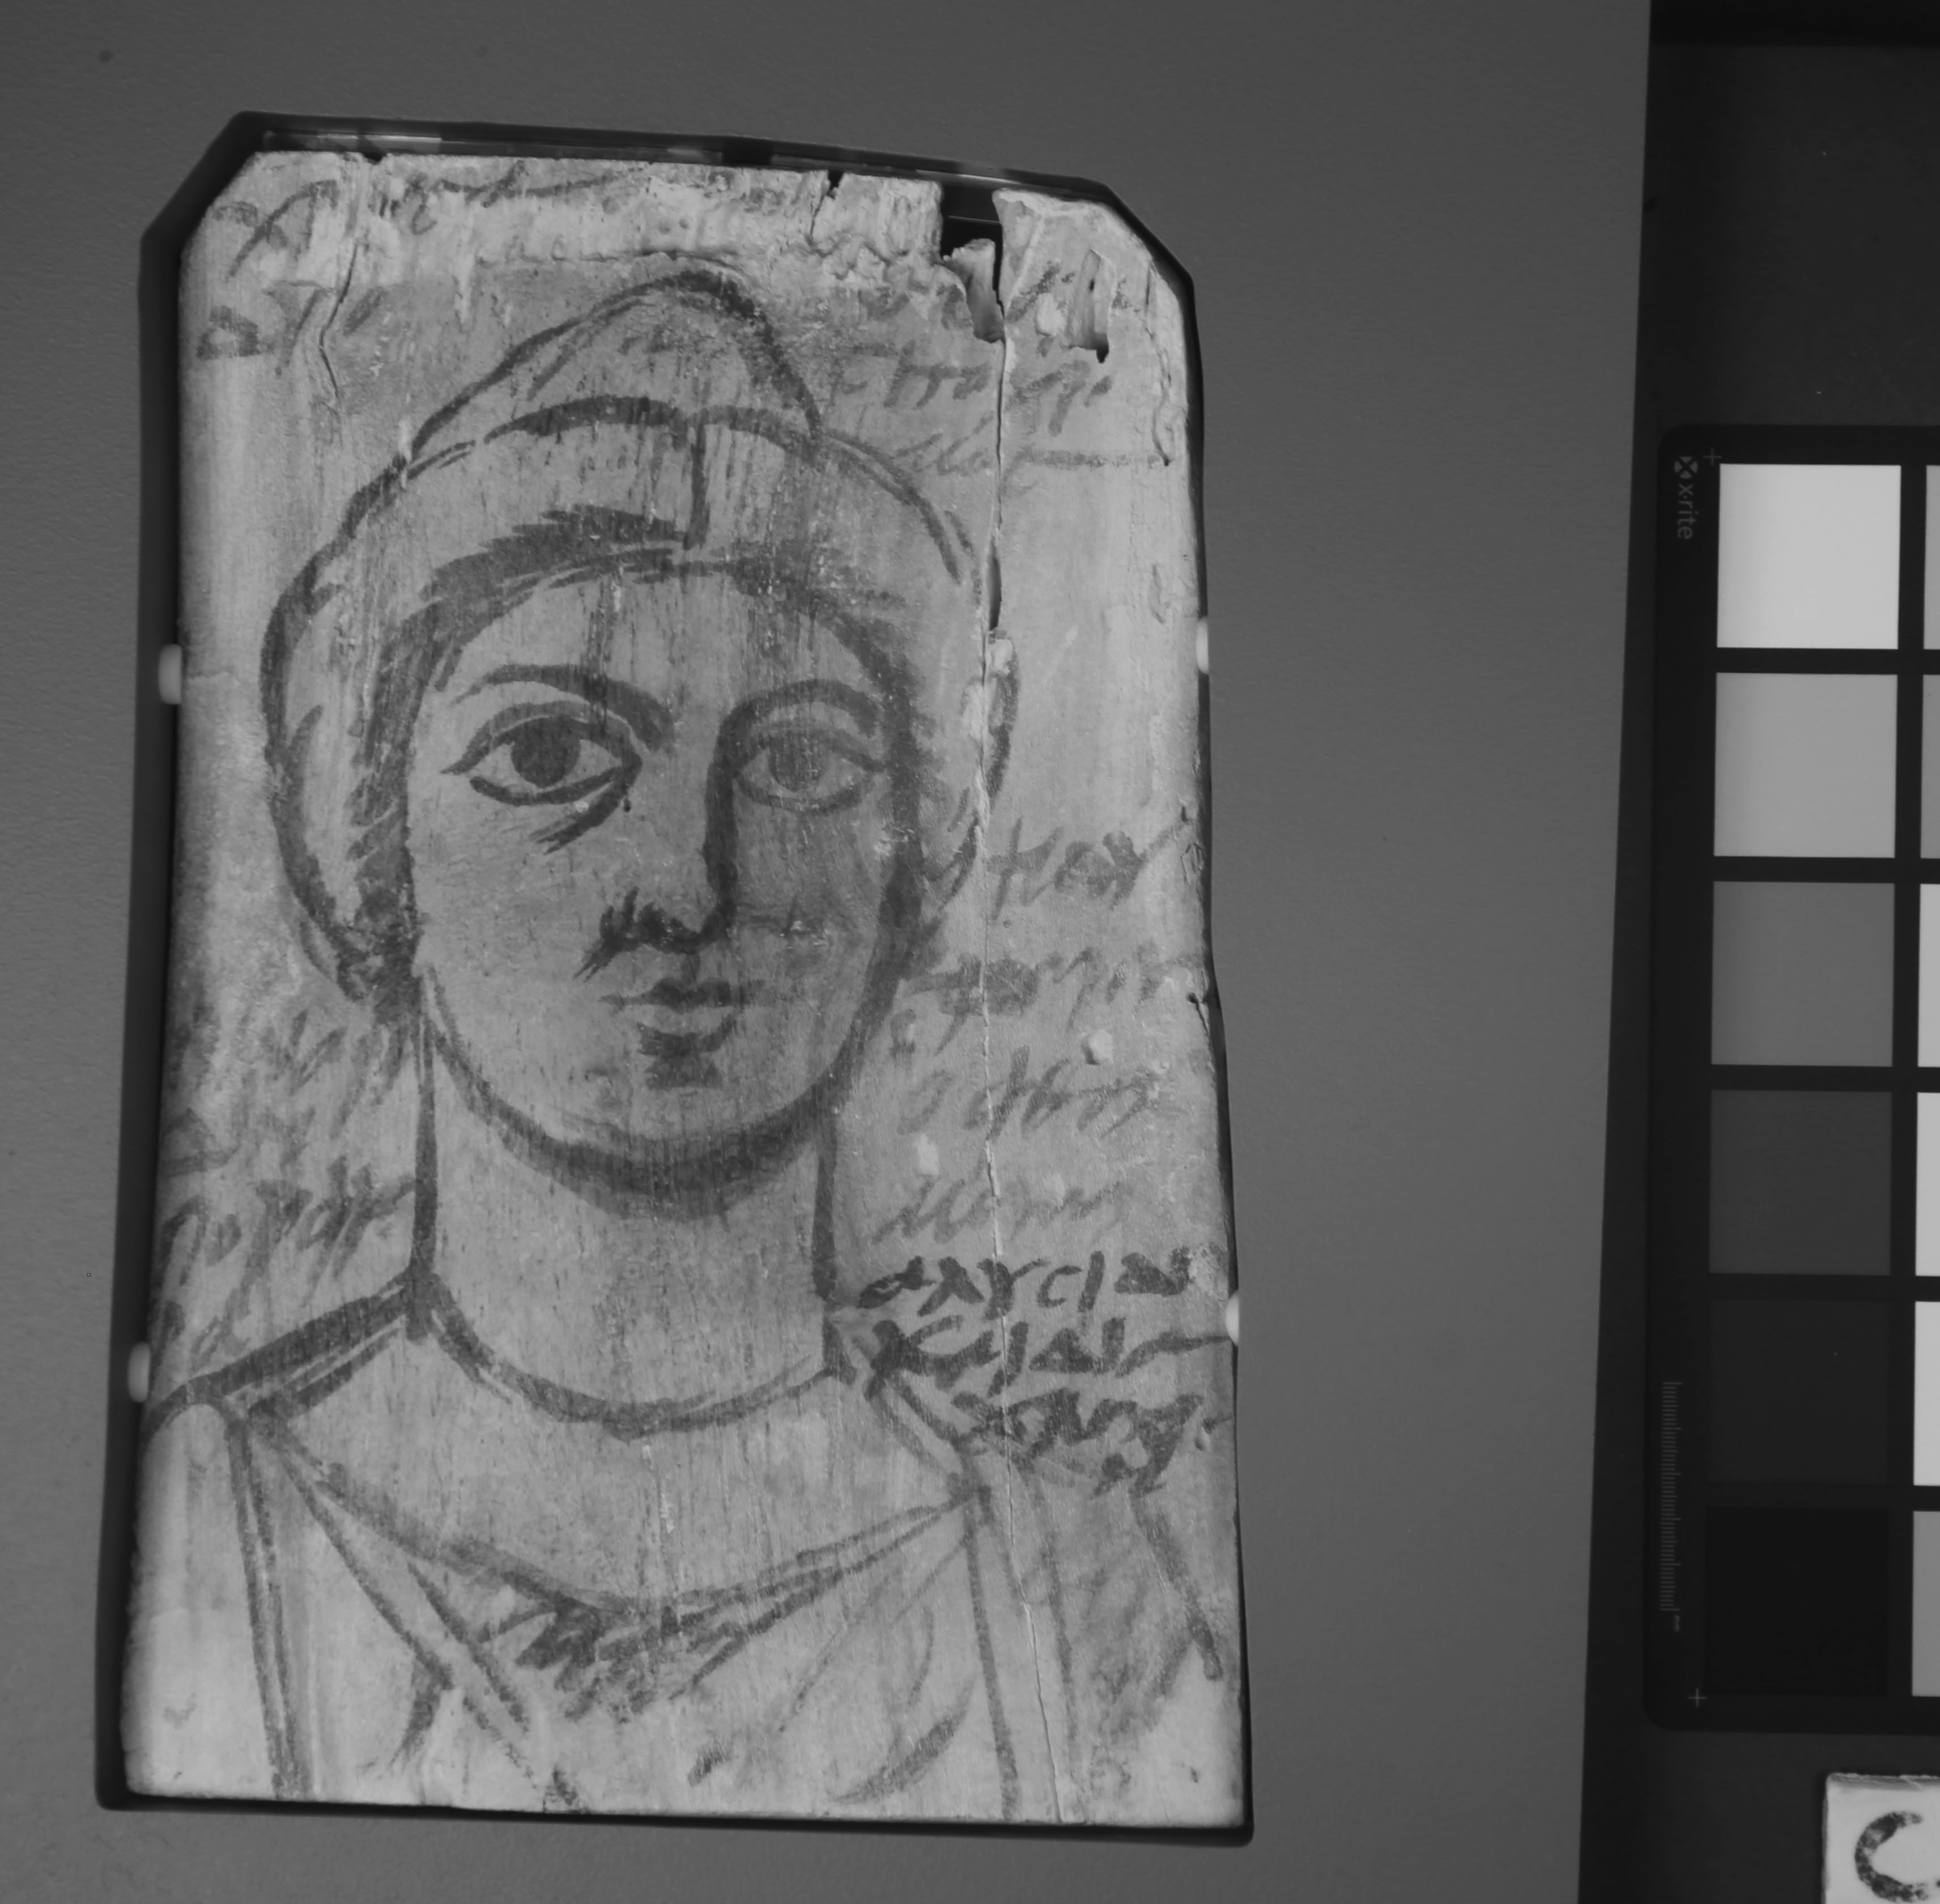 Mummy Portrait with Annotations in Greek